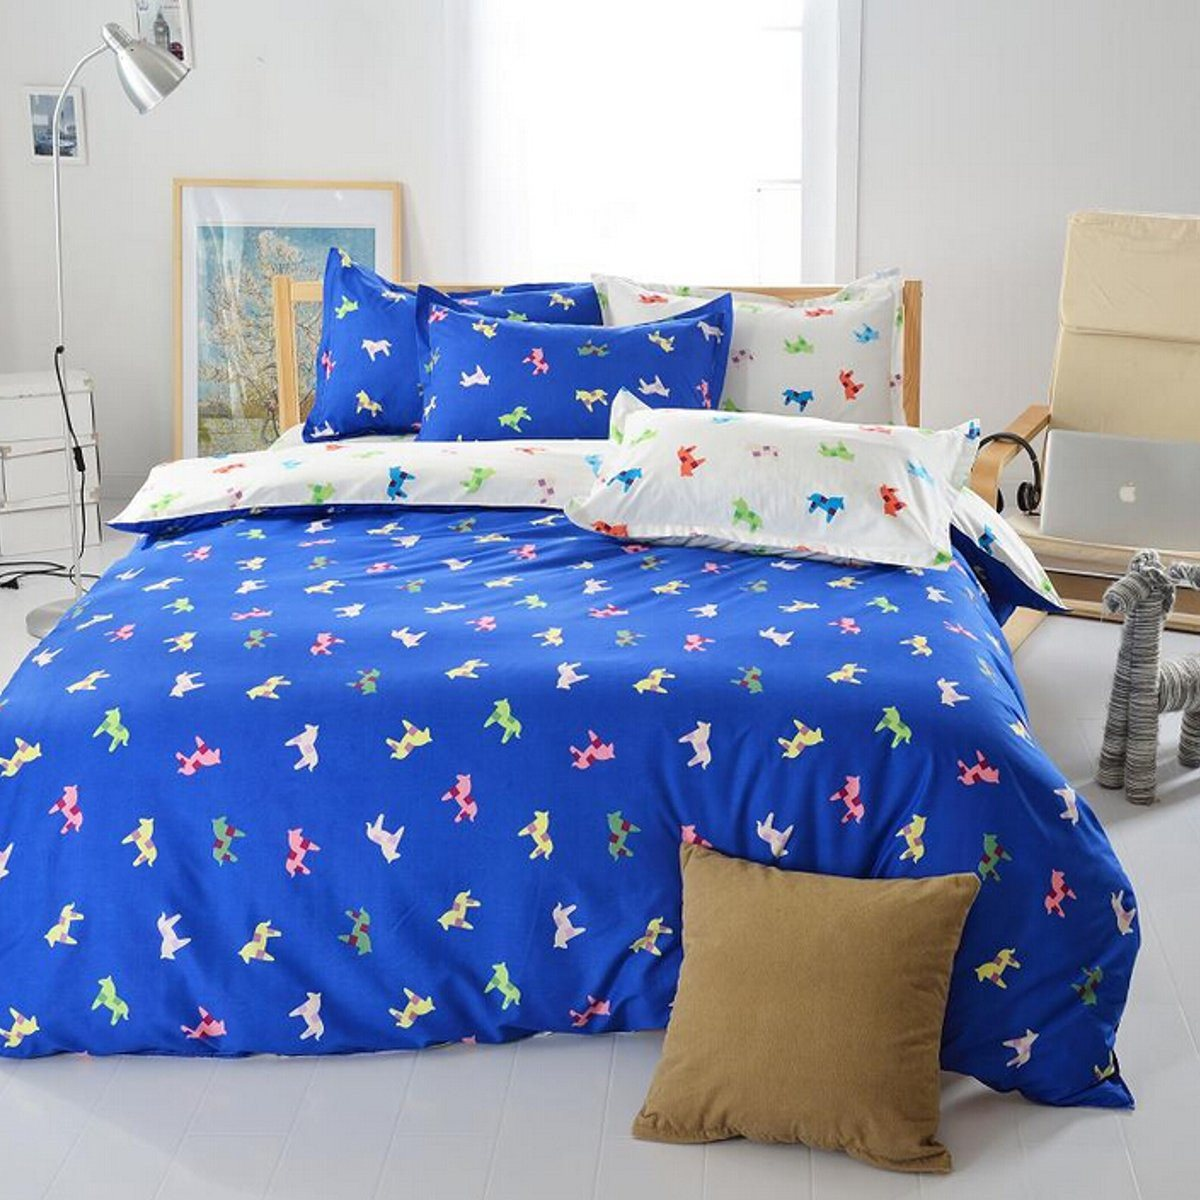 polyester bedding blue animal horse printed bed set home textile quilt duvet cover pillowcases bed sheet - King Size Bed Sheets